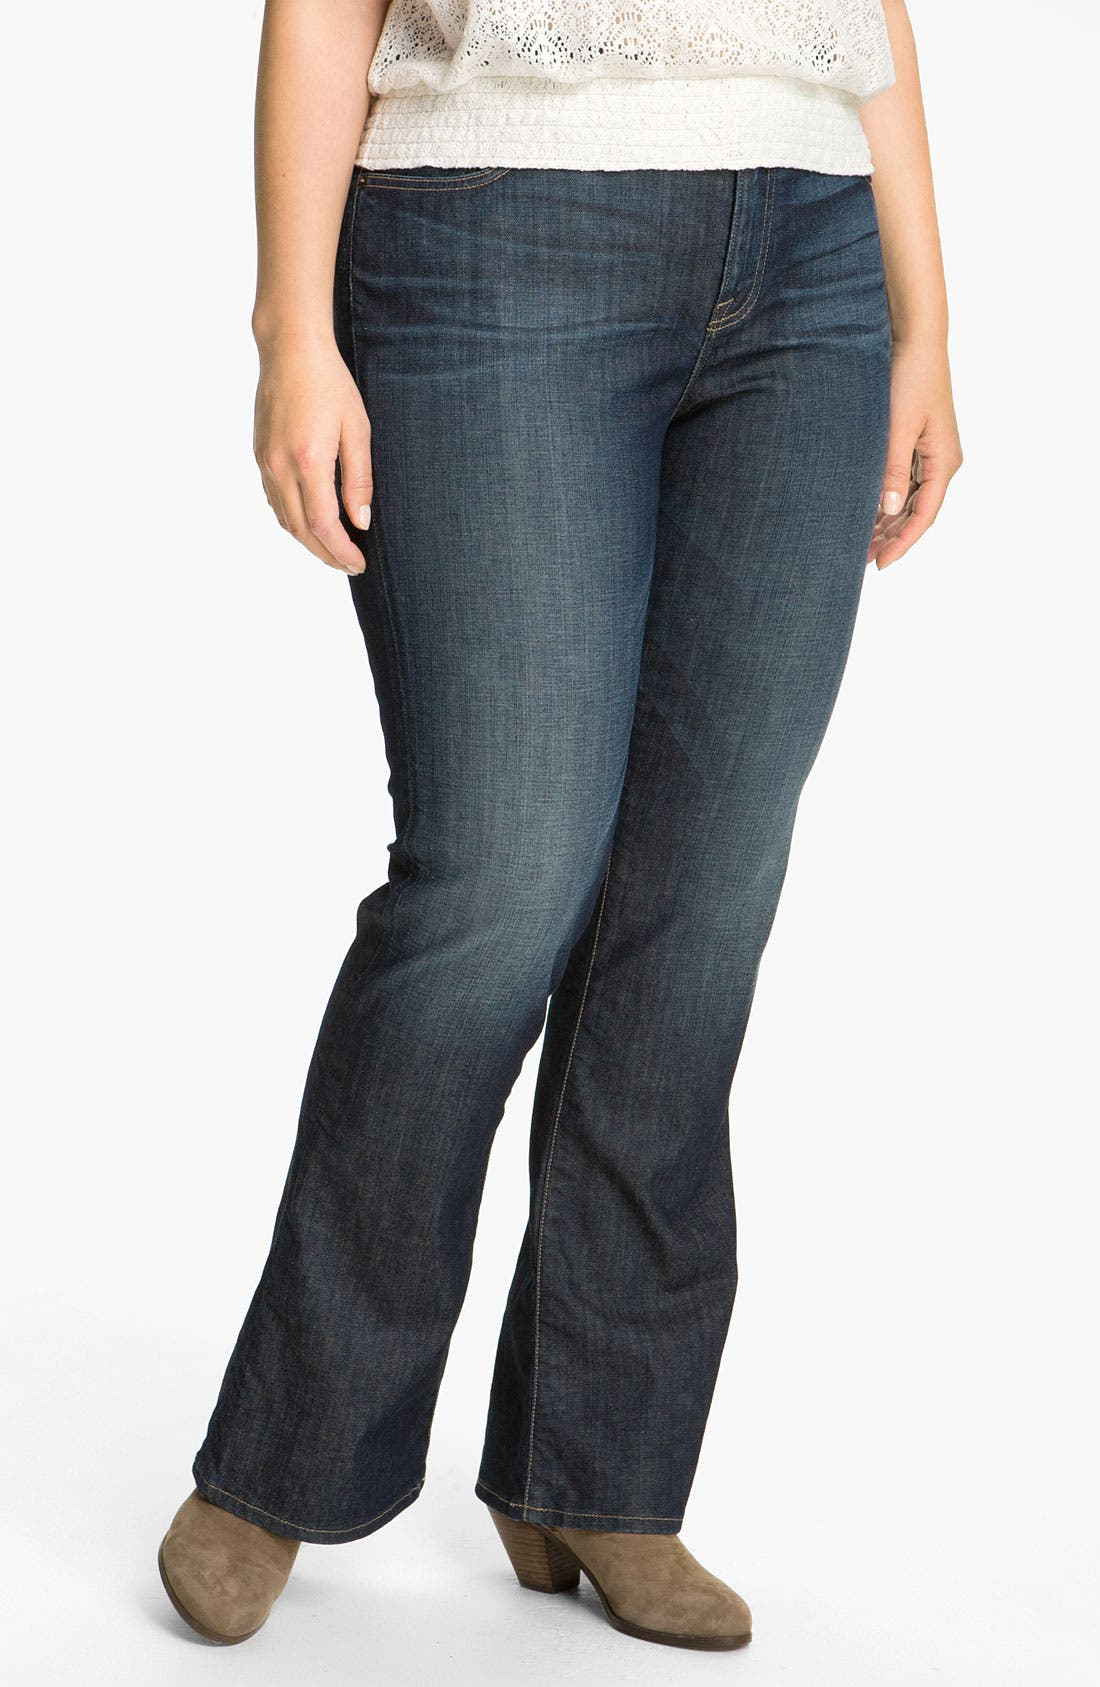 Alternate Image 1 Selected - Lucky Brand 'Ginger' Bootcut Jeans (Plus)